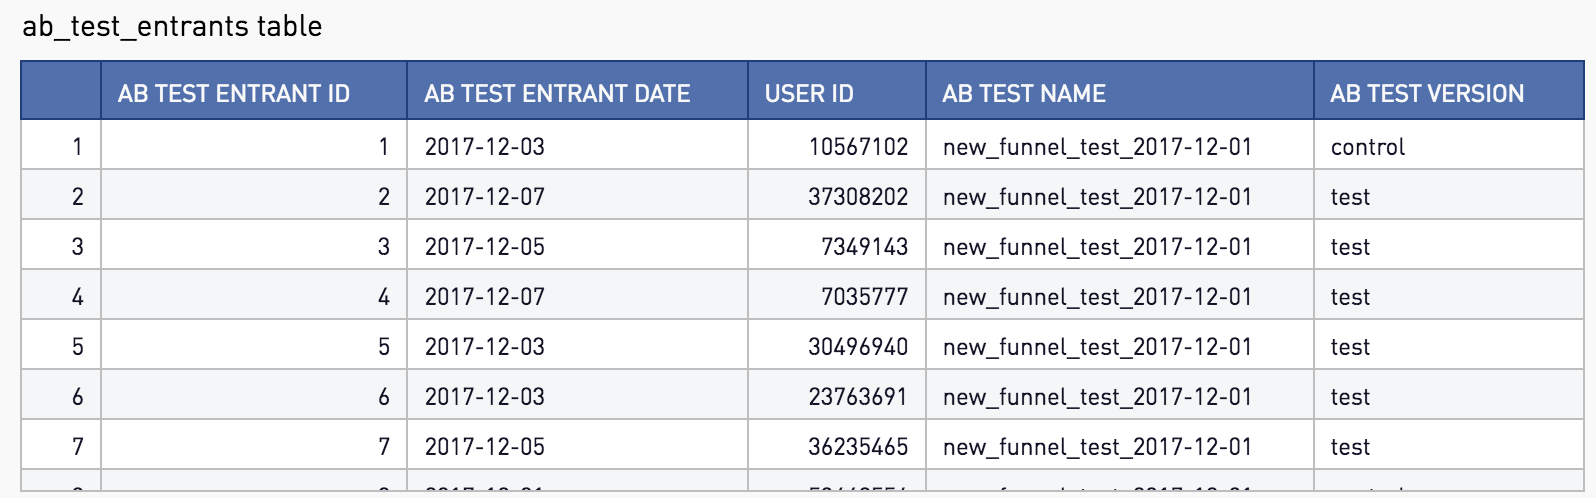 A/B Test Reporting and Visualization in SQL